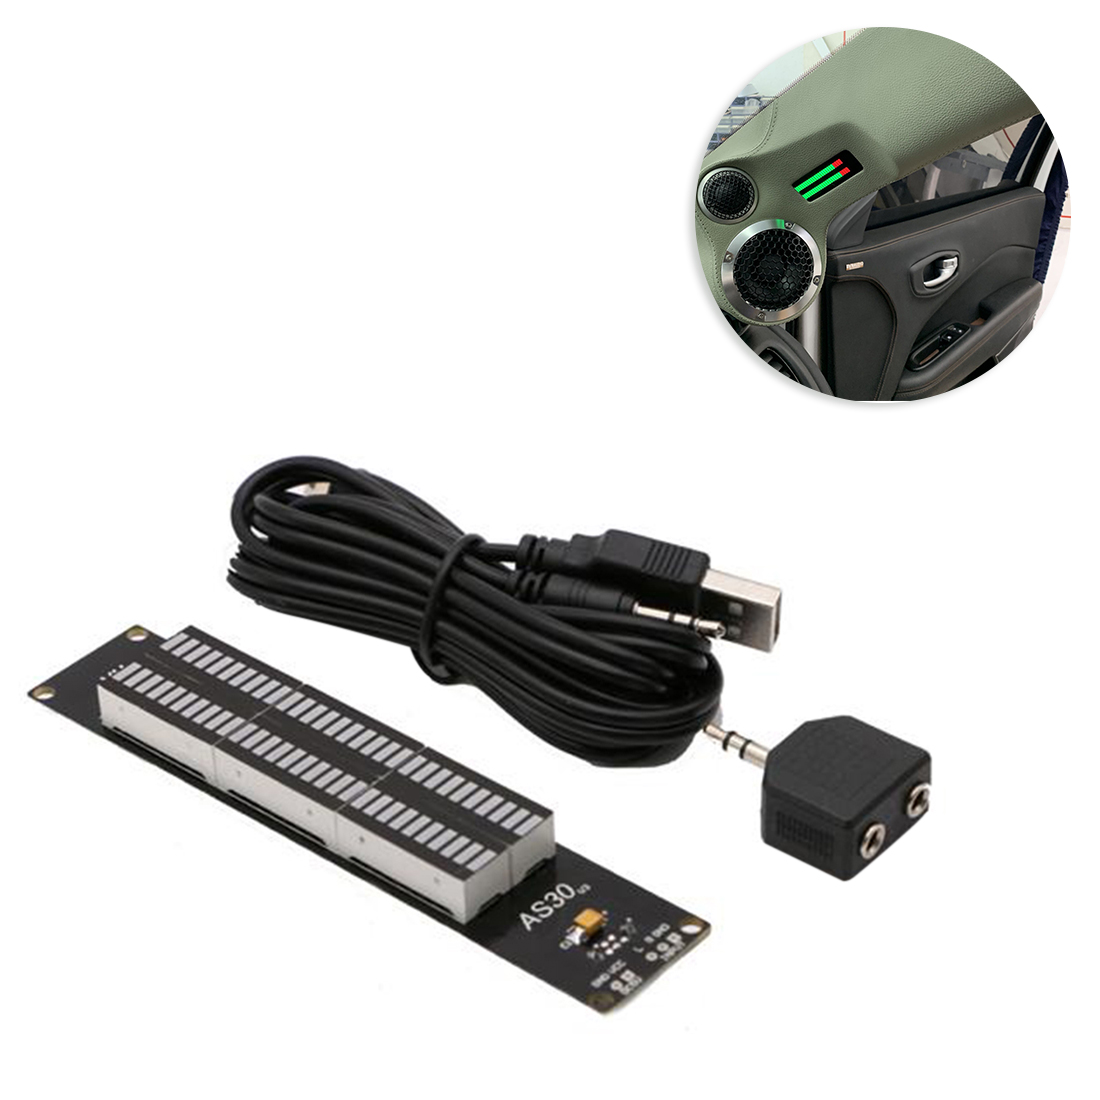 AS30 Professional Music Spectrum Display Car Amplifier Audio Modification Level Indicator Without Shell - Bulk Parts